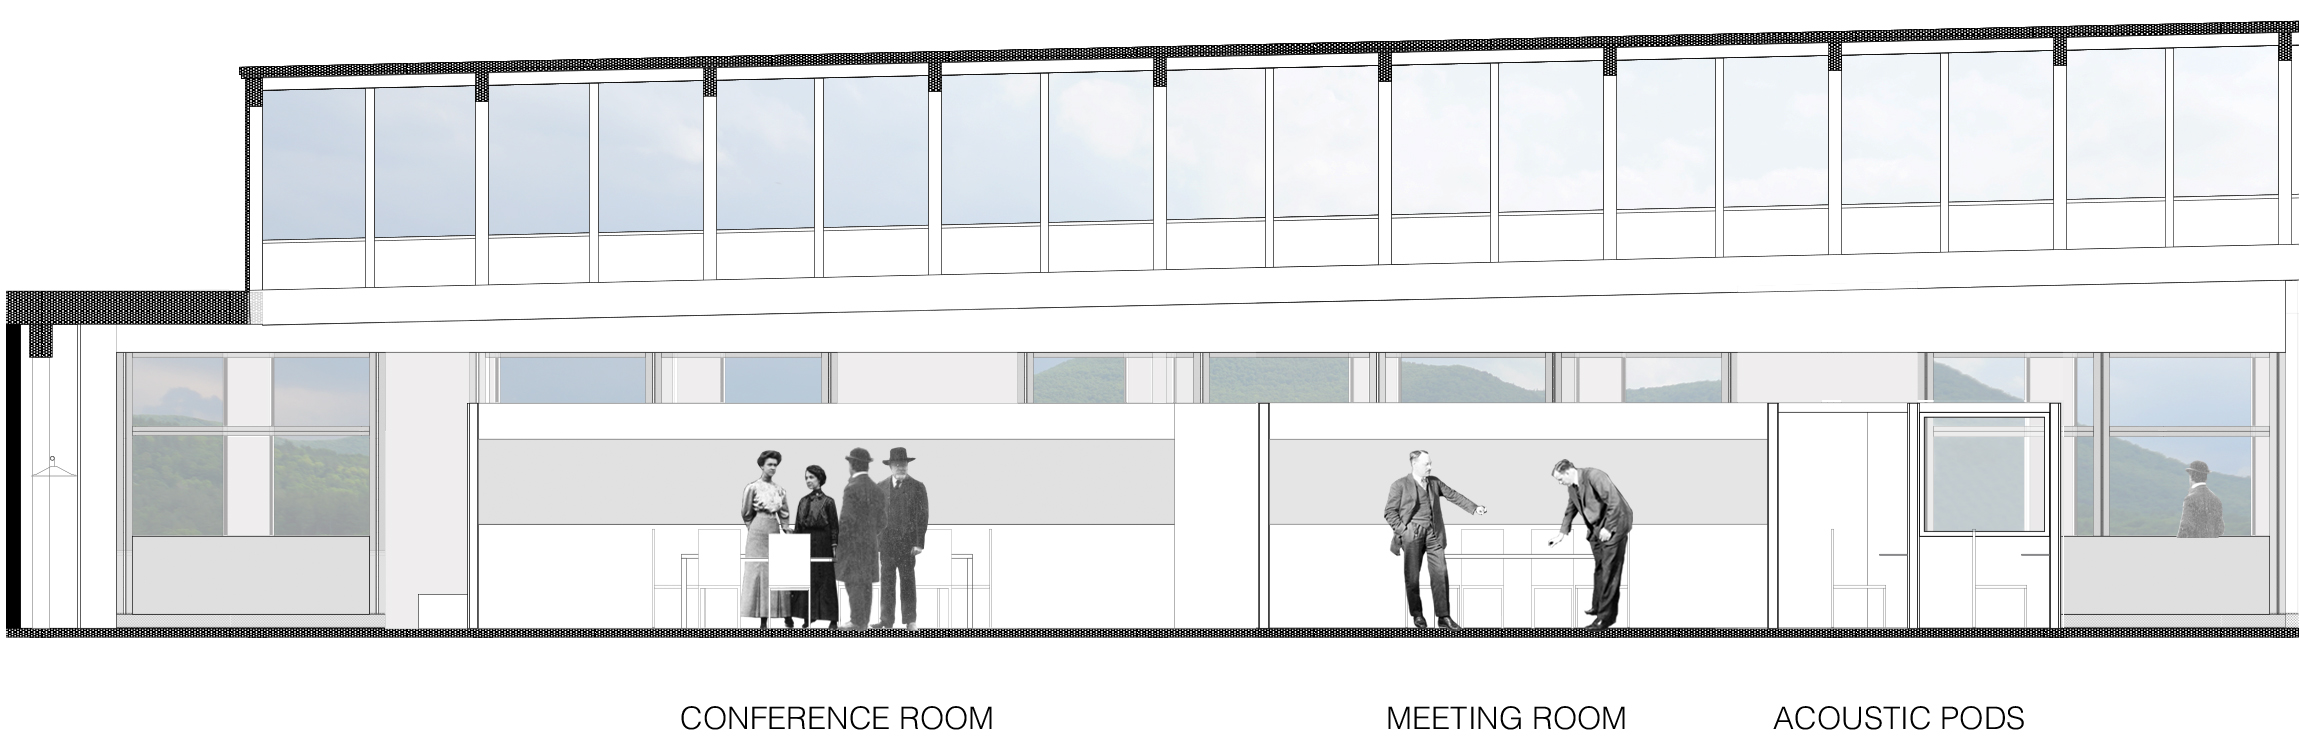 NORTH VIEW THROUGH MEETING SPACES